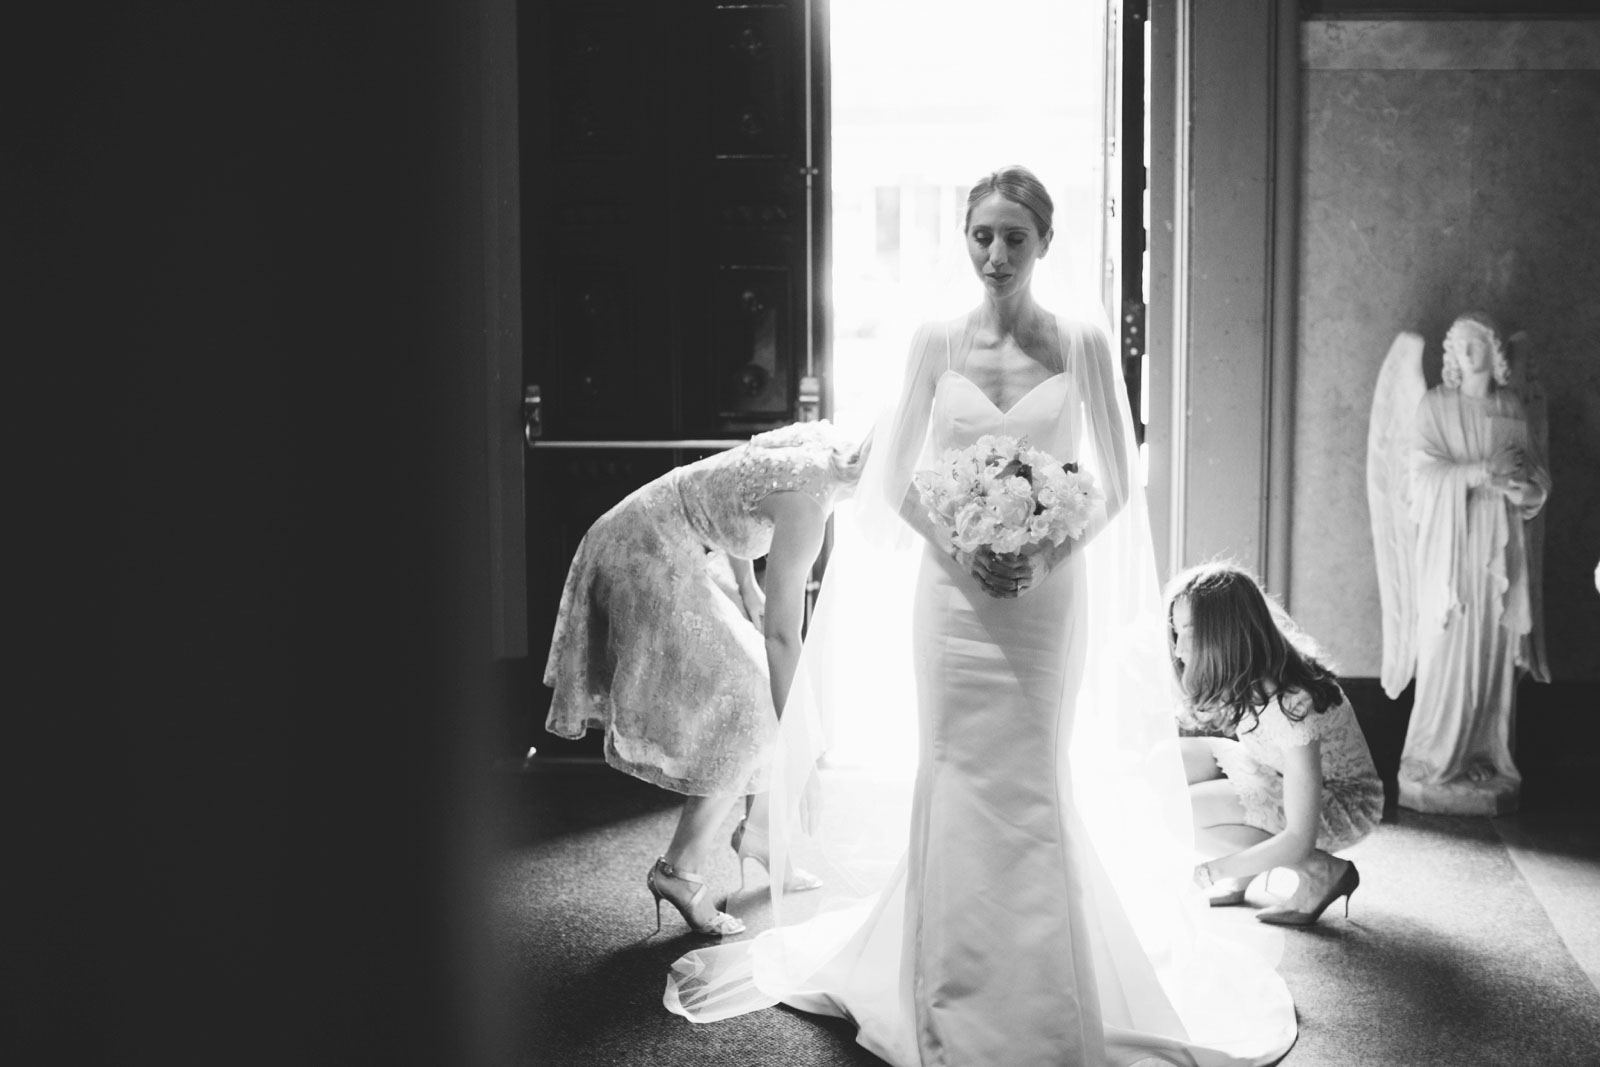 bridesmaids help fix bride's train in entryway of church with beautiful natural light behind her